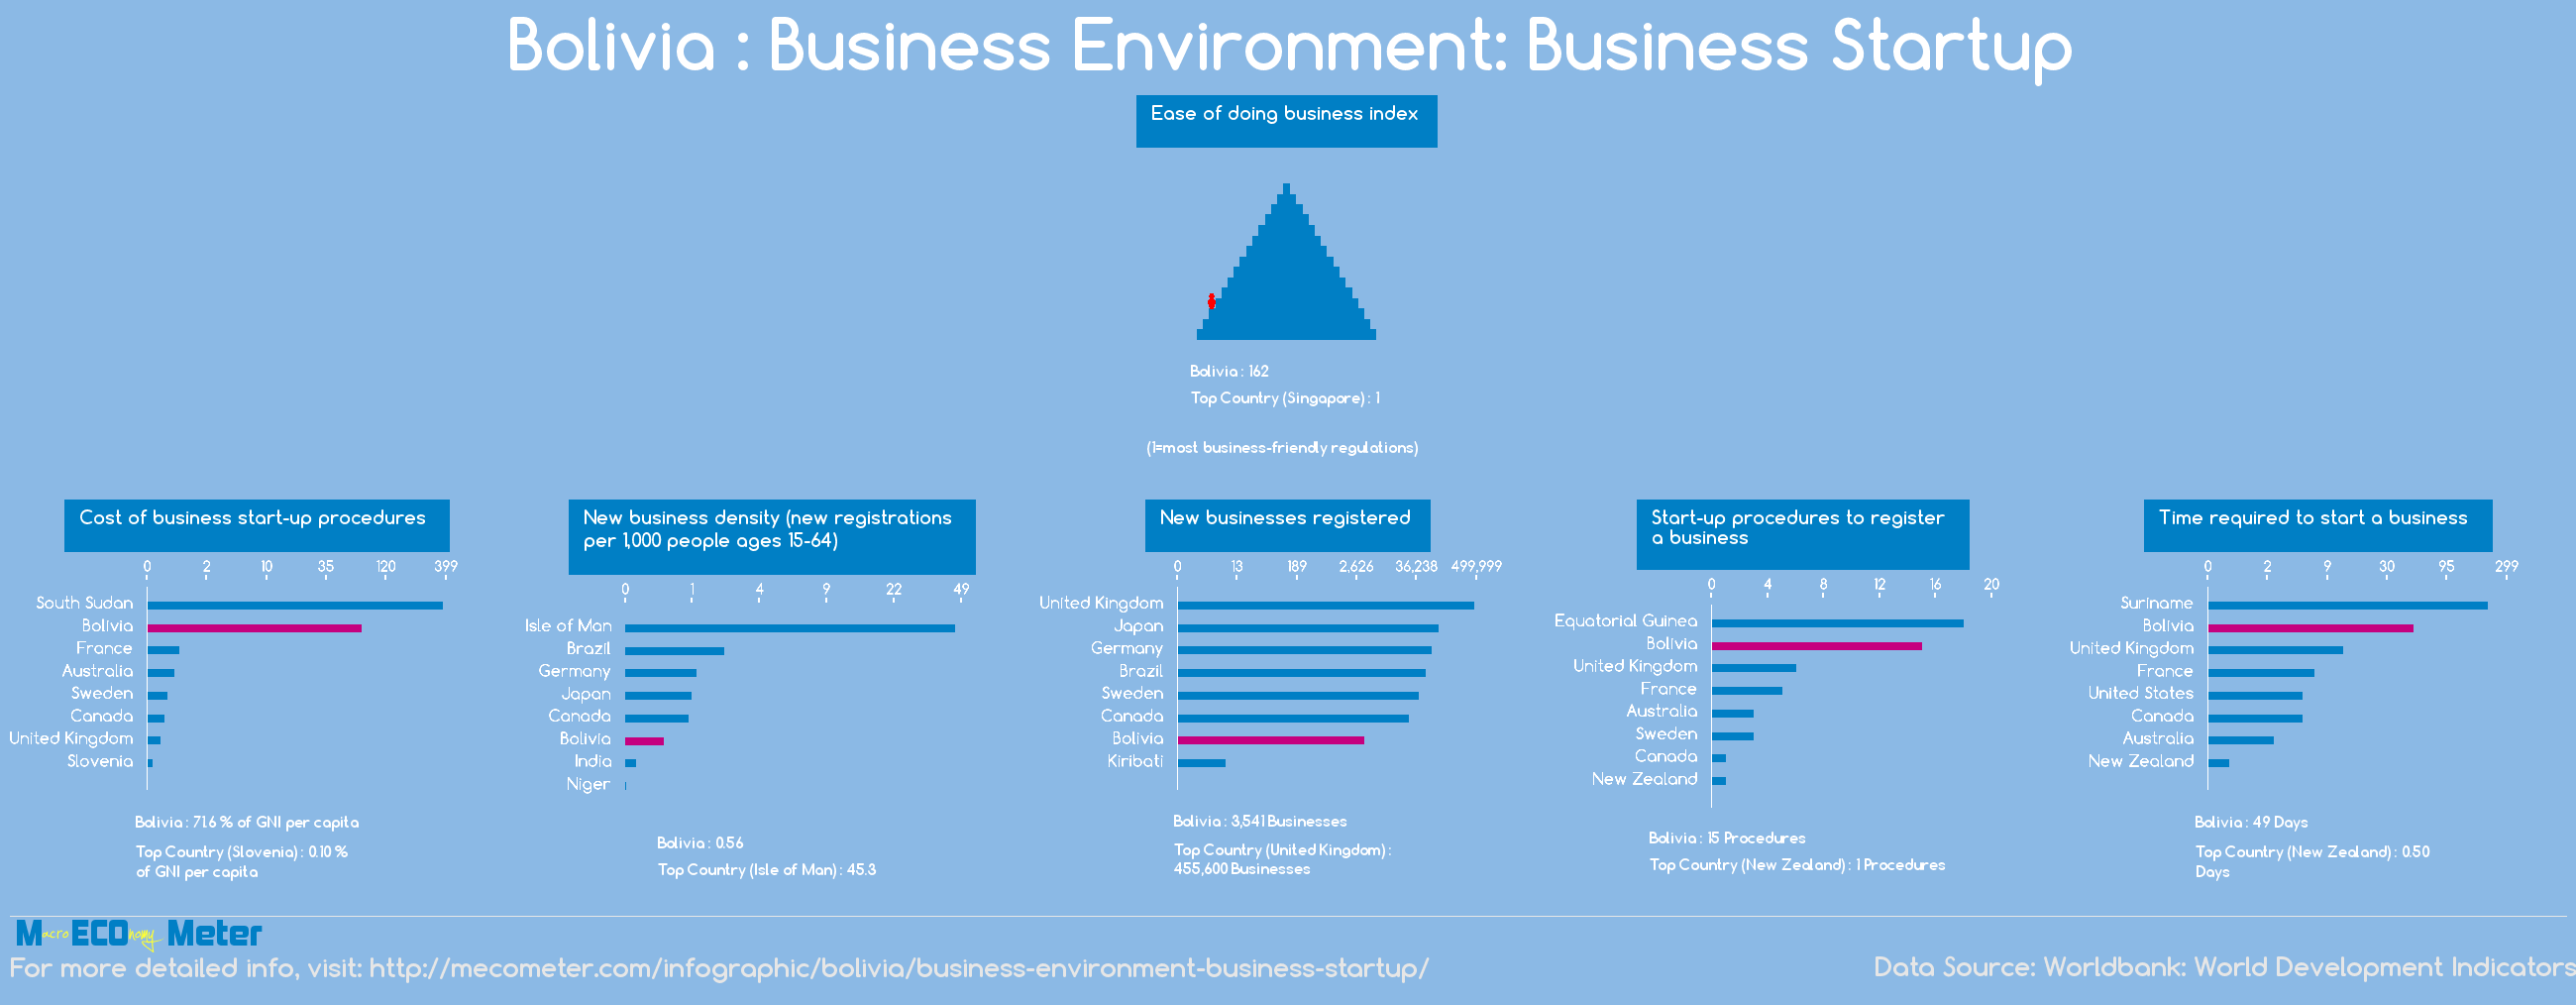 Bolivia : Business Environment: Business Startup